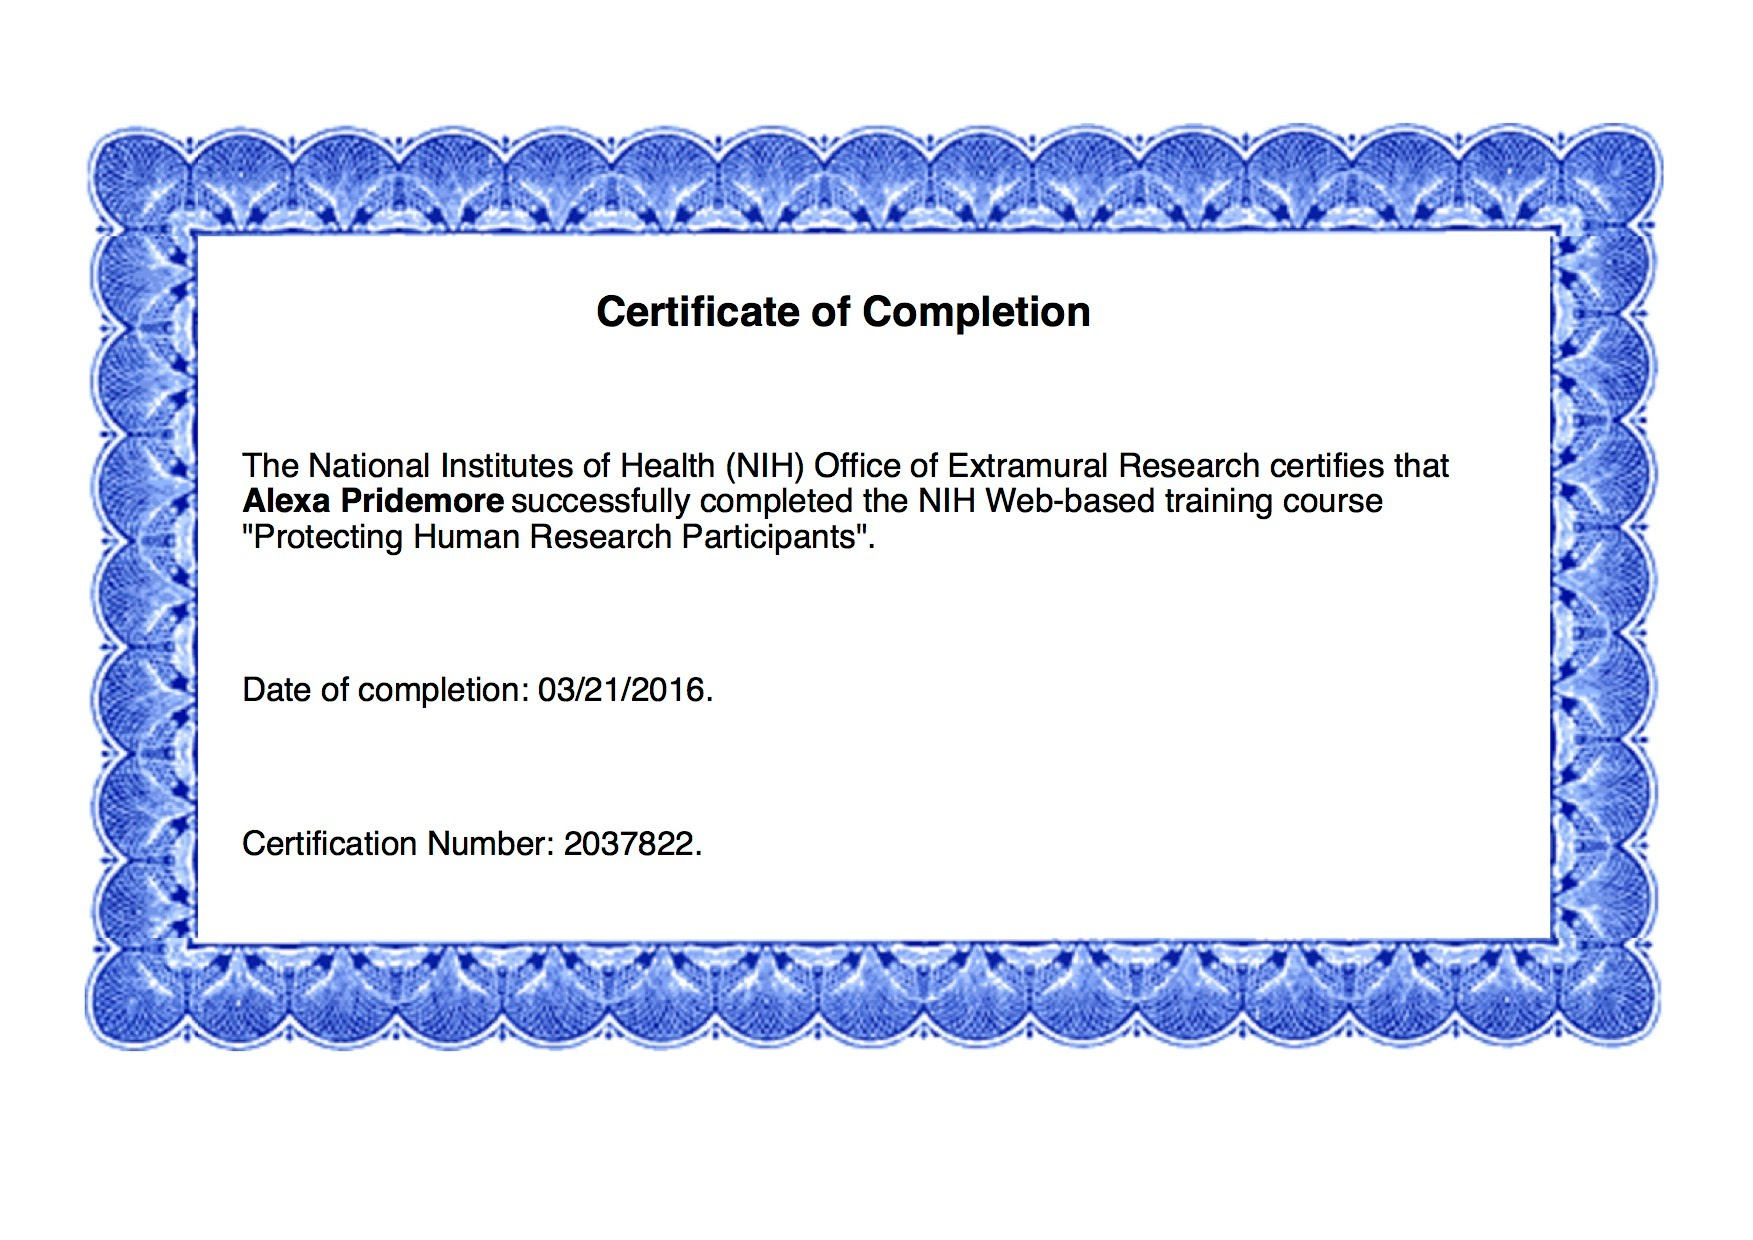 Inspirational collection of nih certification business cards and professional certifications alexa pridemore s professional rn xflitez Image collections